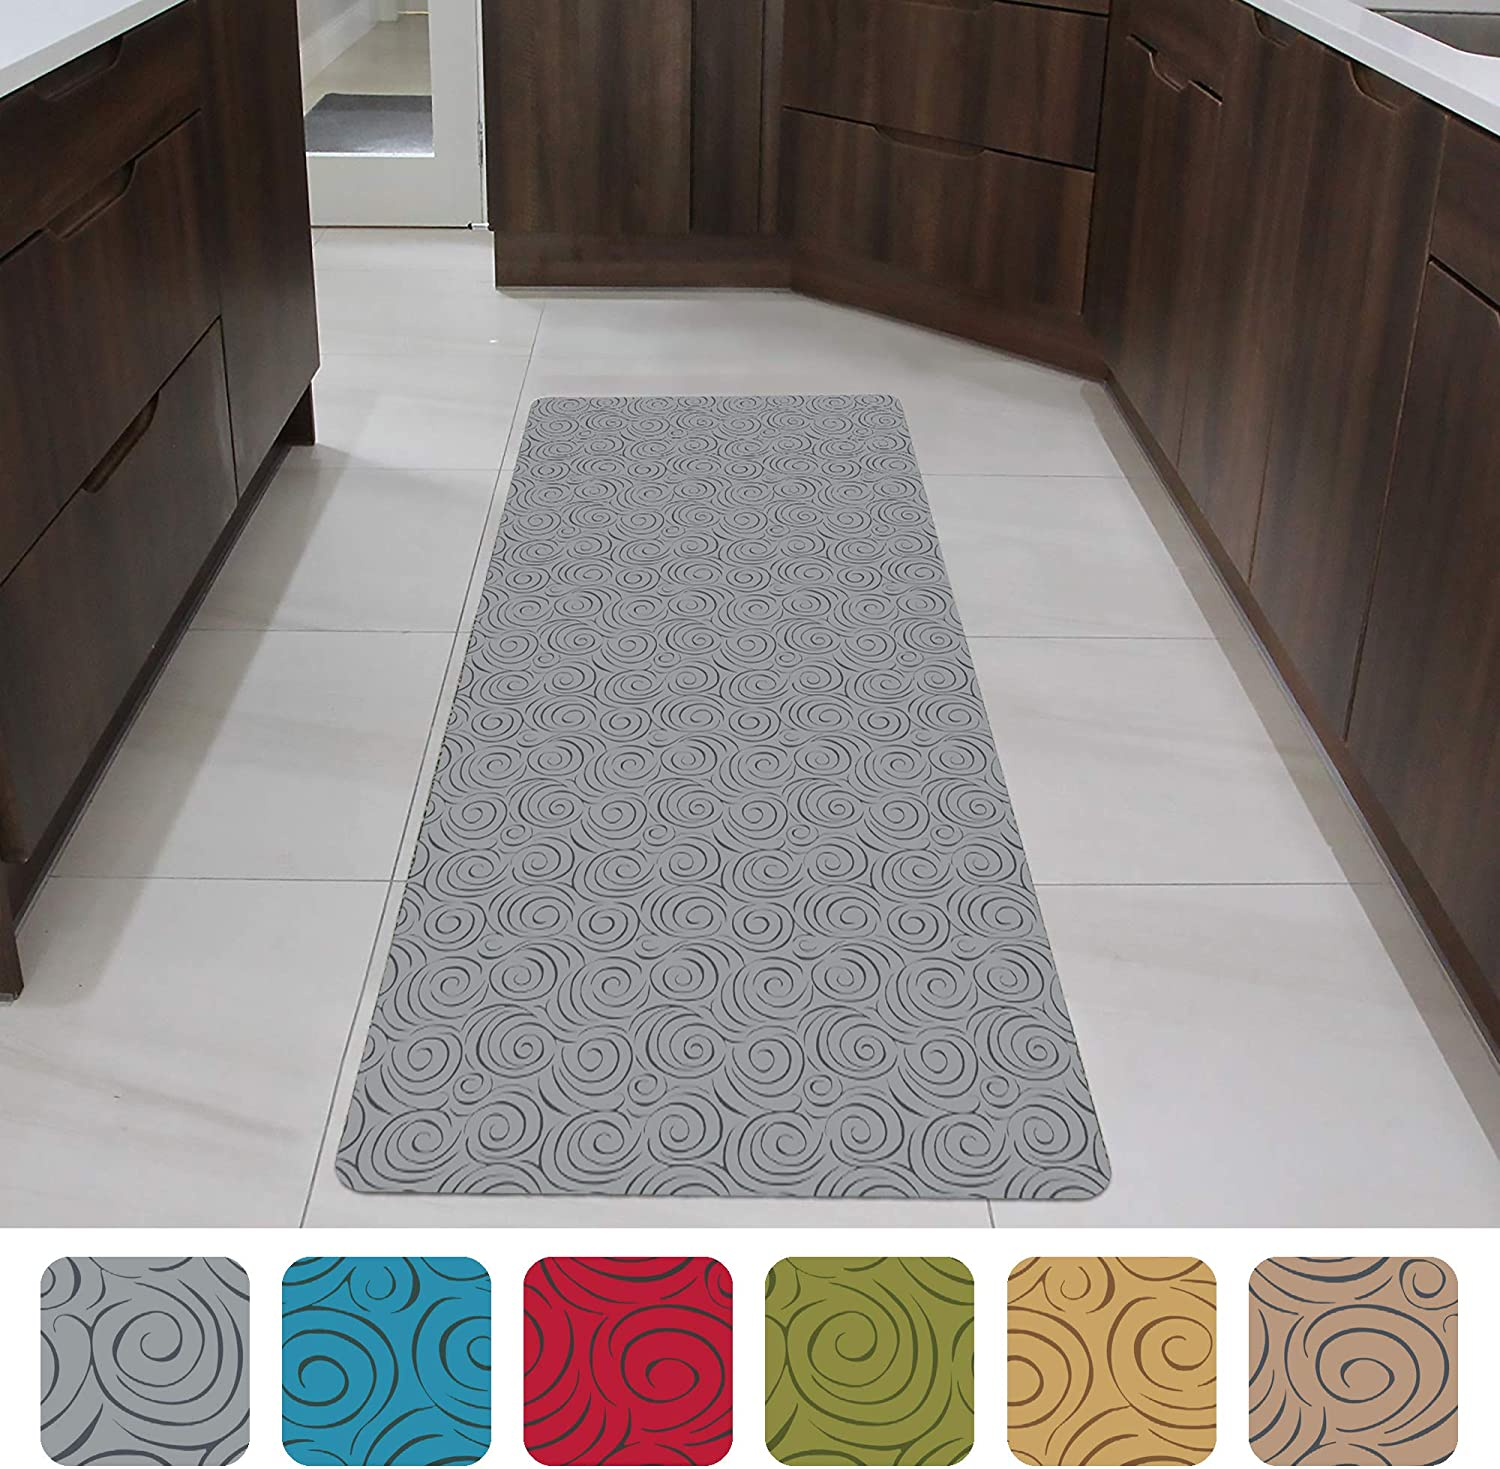 "Shape28 Runner Mat Ultra-Thin Kitchen Rug with Non Slip Rubber Backing 60x23"", Gray"